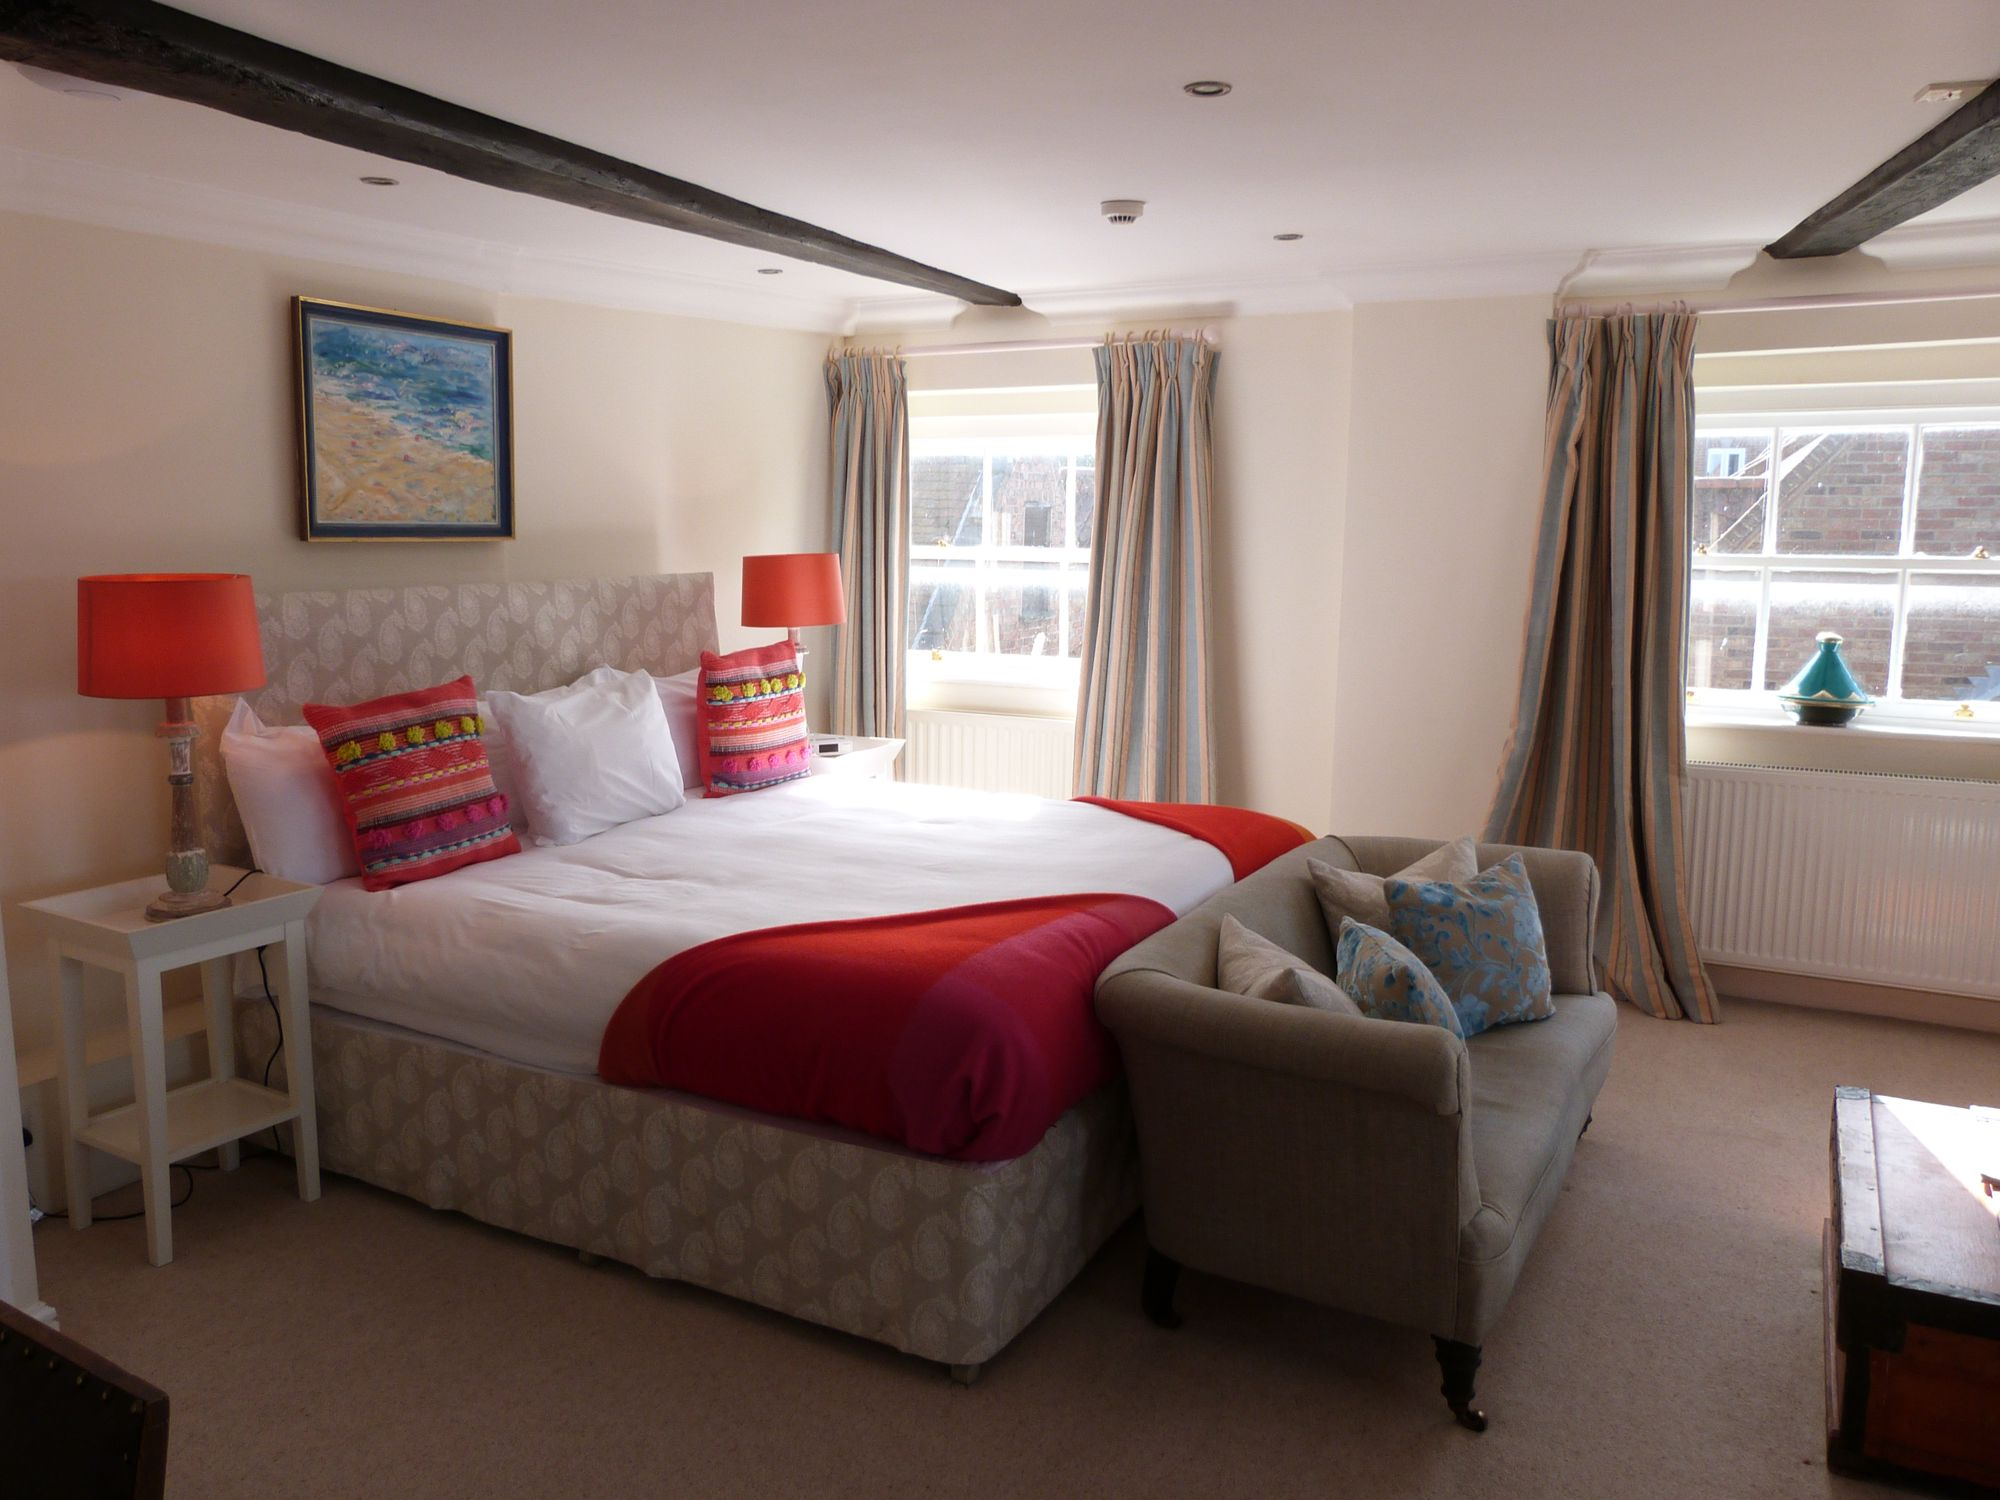 Hotels in King's Lynn holidays at Cool Places